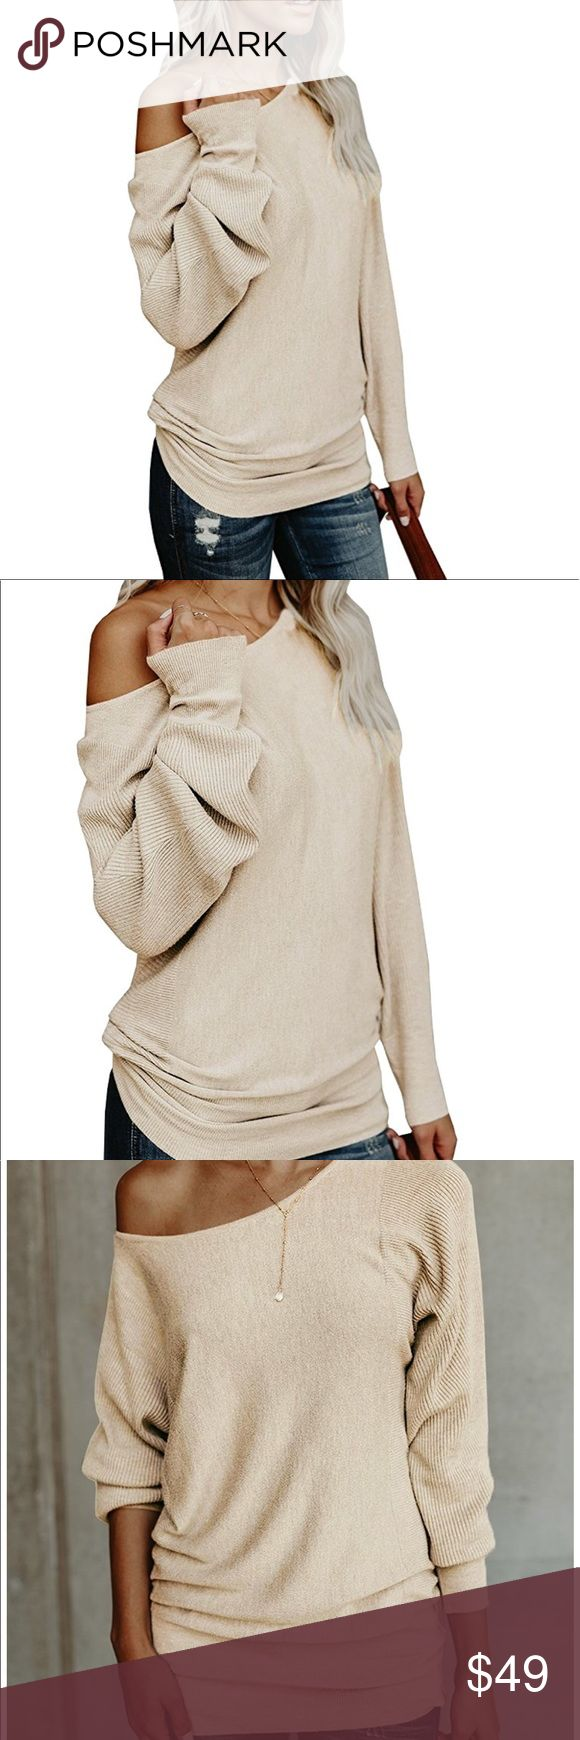 women knitted sweater off shoulder sleeve Beautiful women knitted sweater one shoulder loose material cotton blend available colors Black. White. Khaki. Navy.Wine red Sweaters